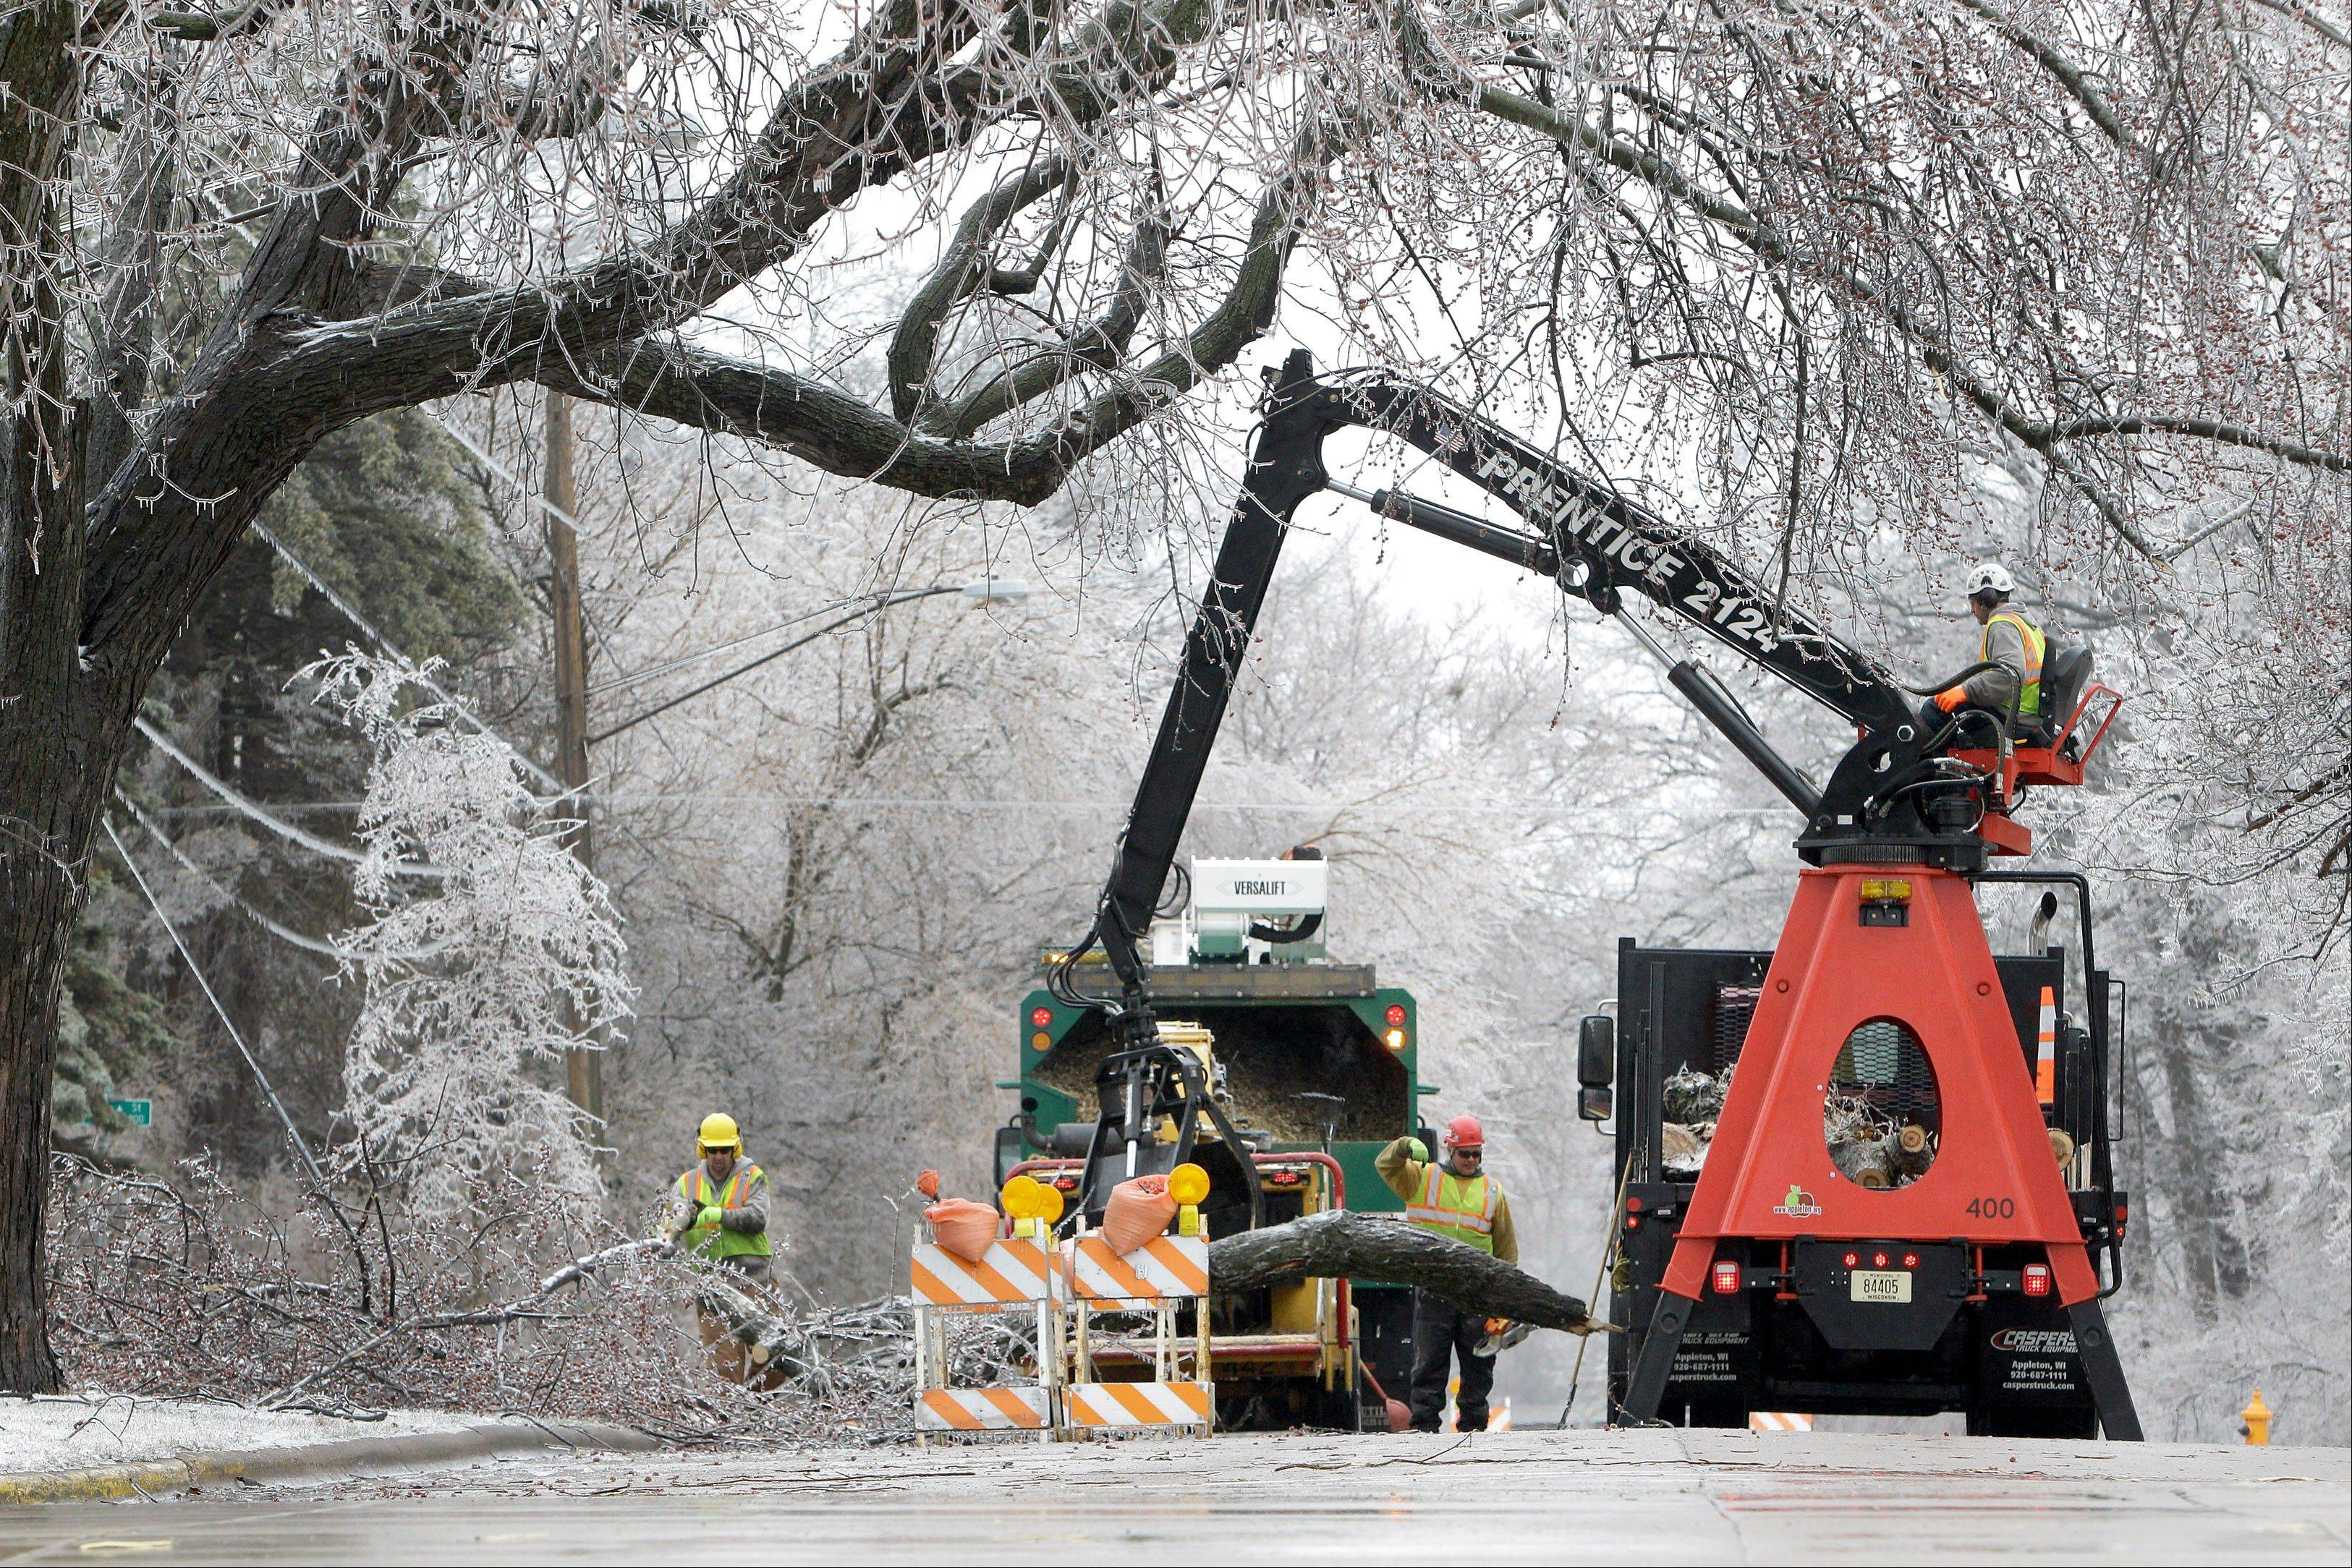 Public works employees remove large fallen tree branches coated in heavy ice Wednesday in Appleton, Wis. A wintry mix of rain, ice and snow in Wisconsin is making travel difficult and has put tens of thousands without power.